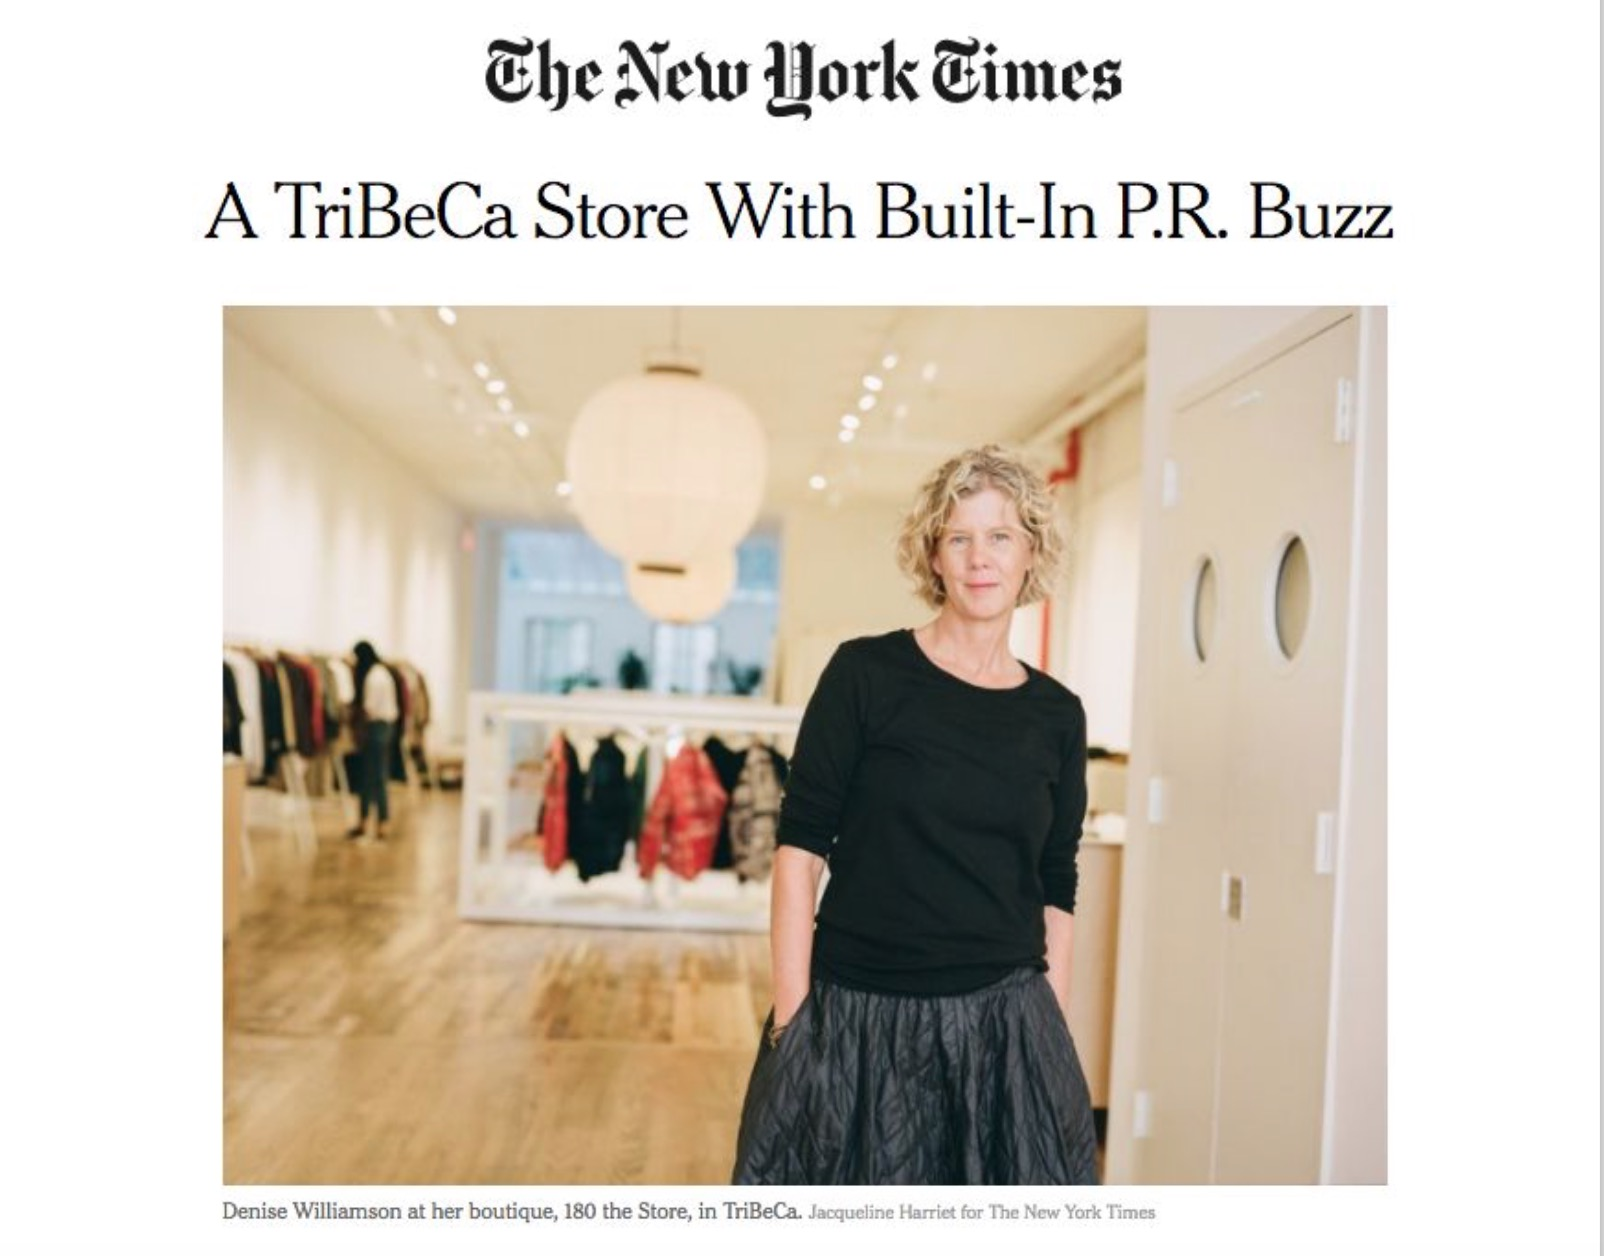 180 the Store Featured in New York Times